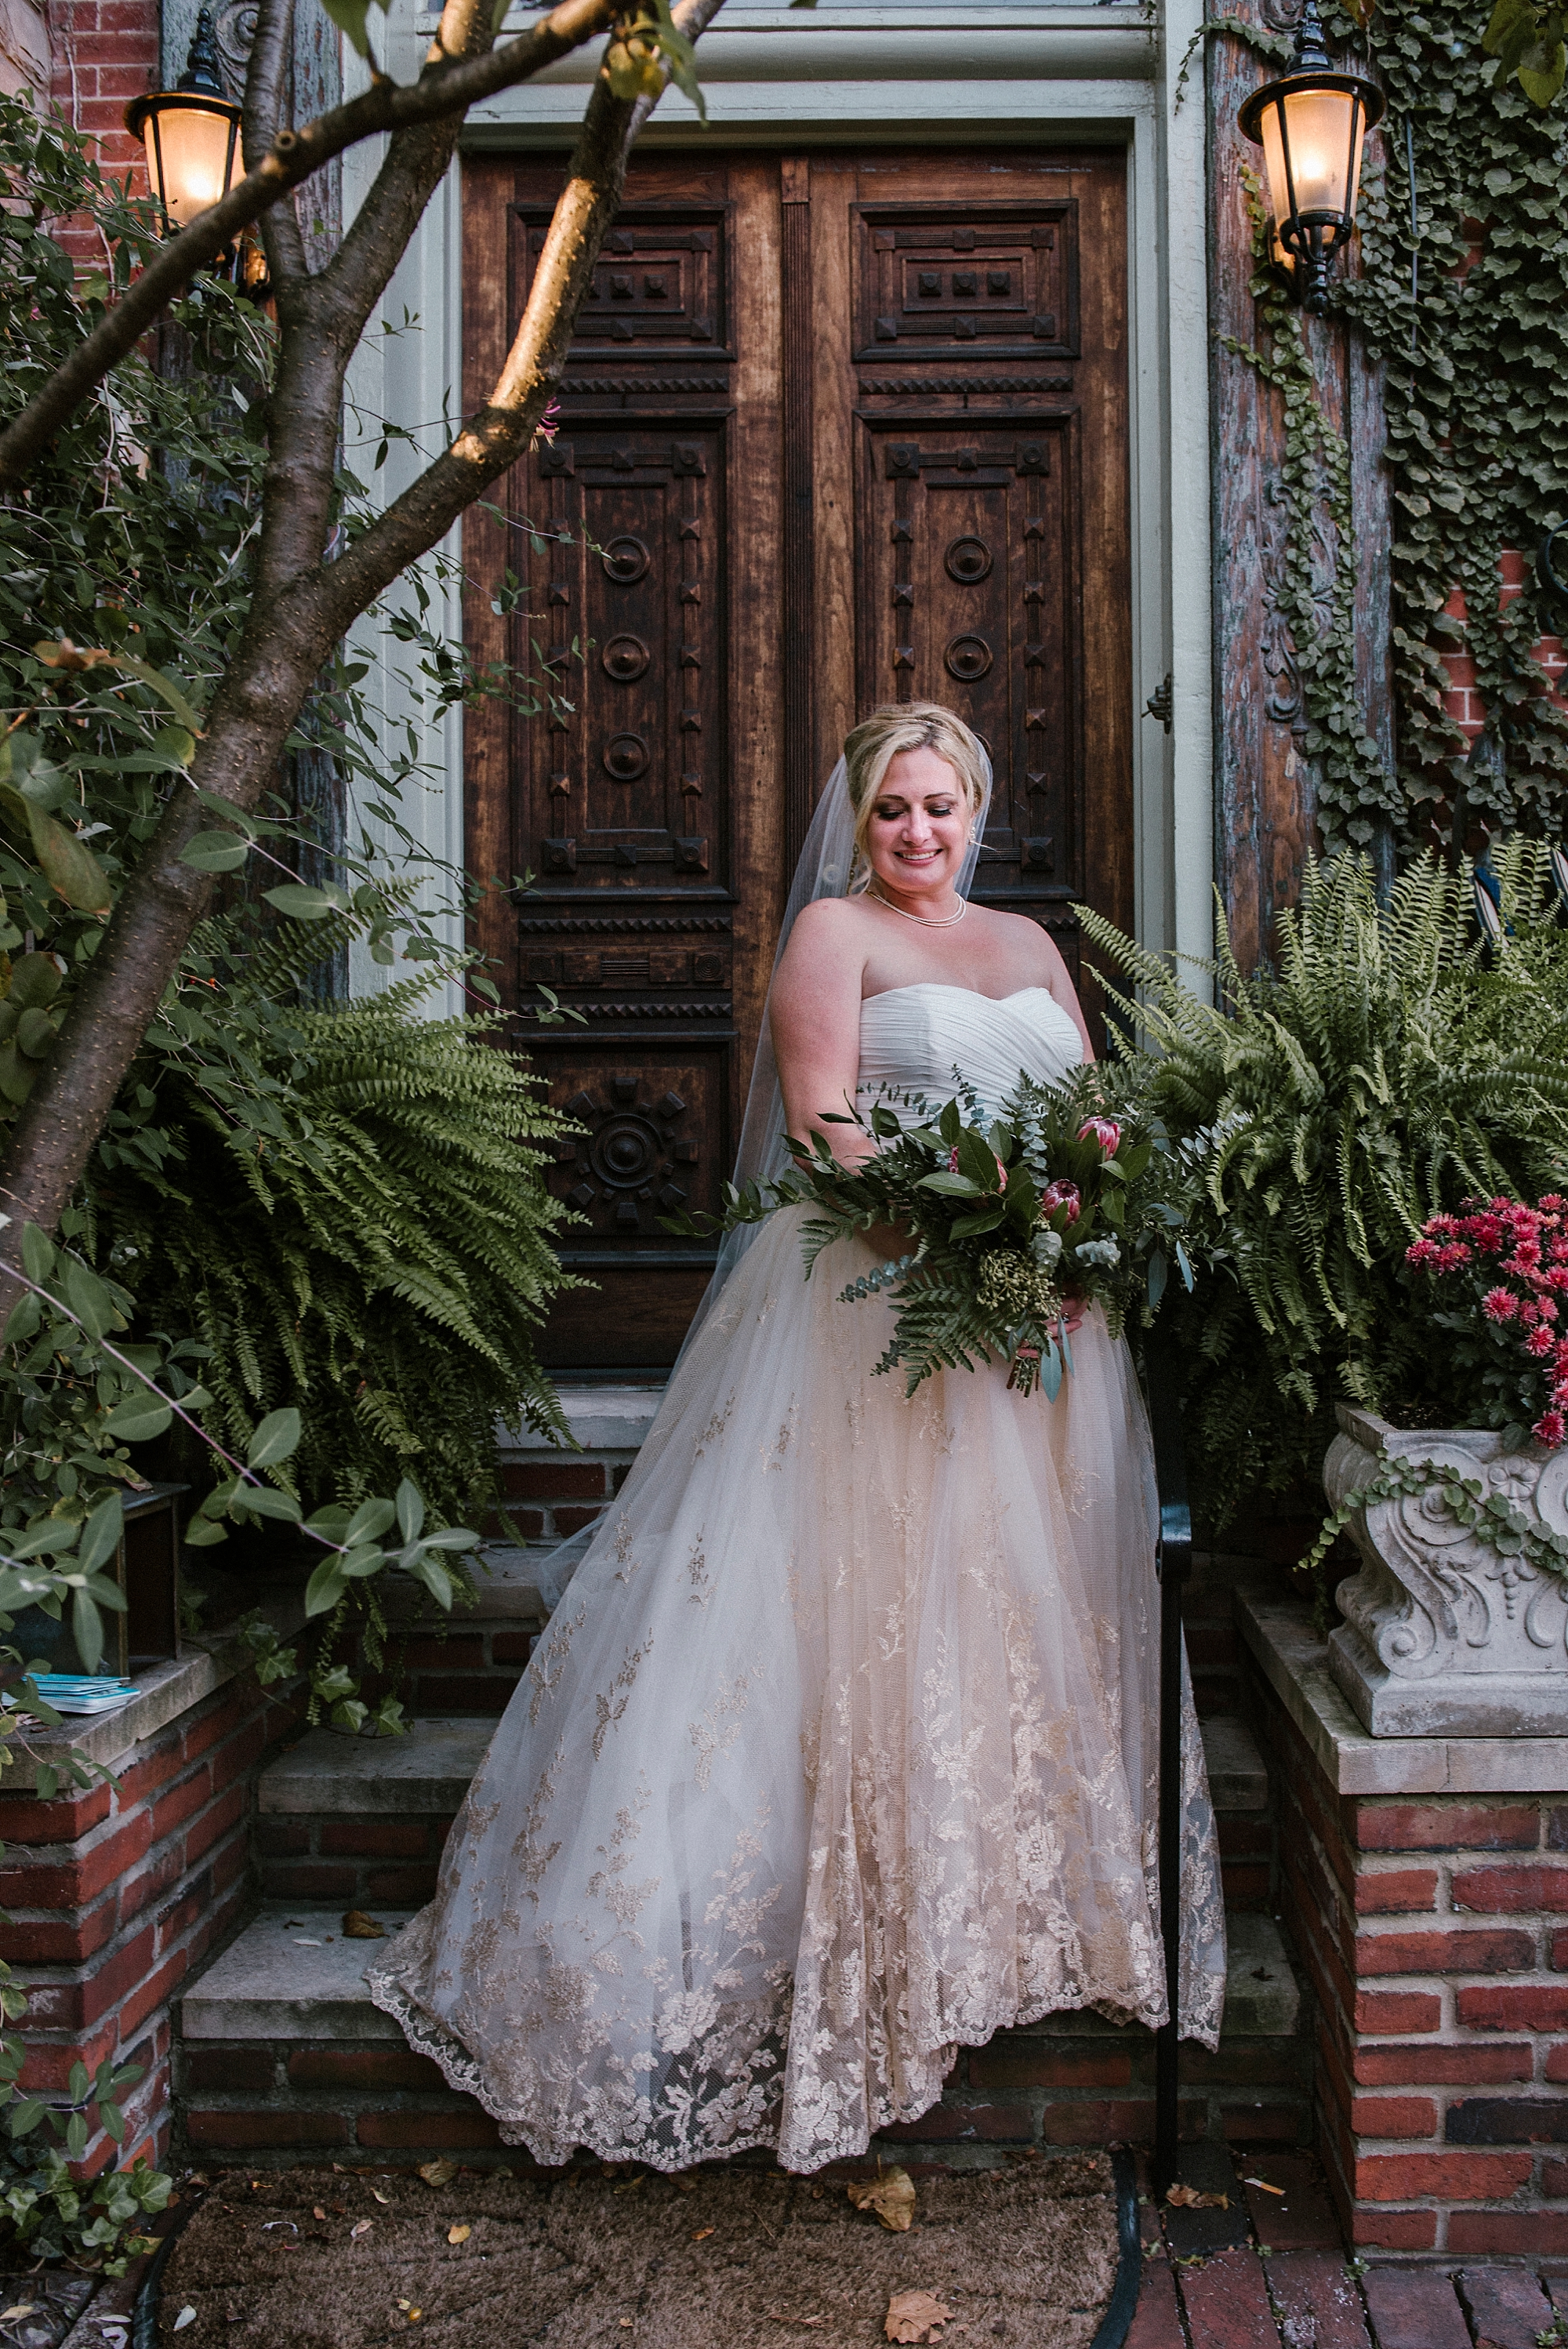 Morning Glory Inn wedding Pittsburgh by Sandrachile Photographer